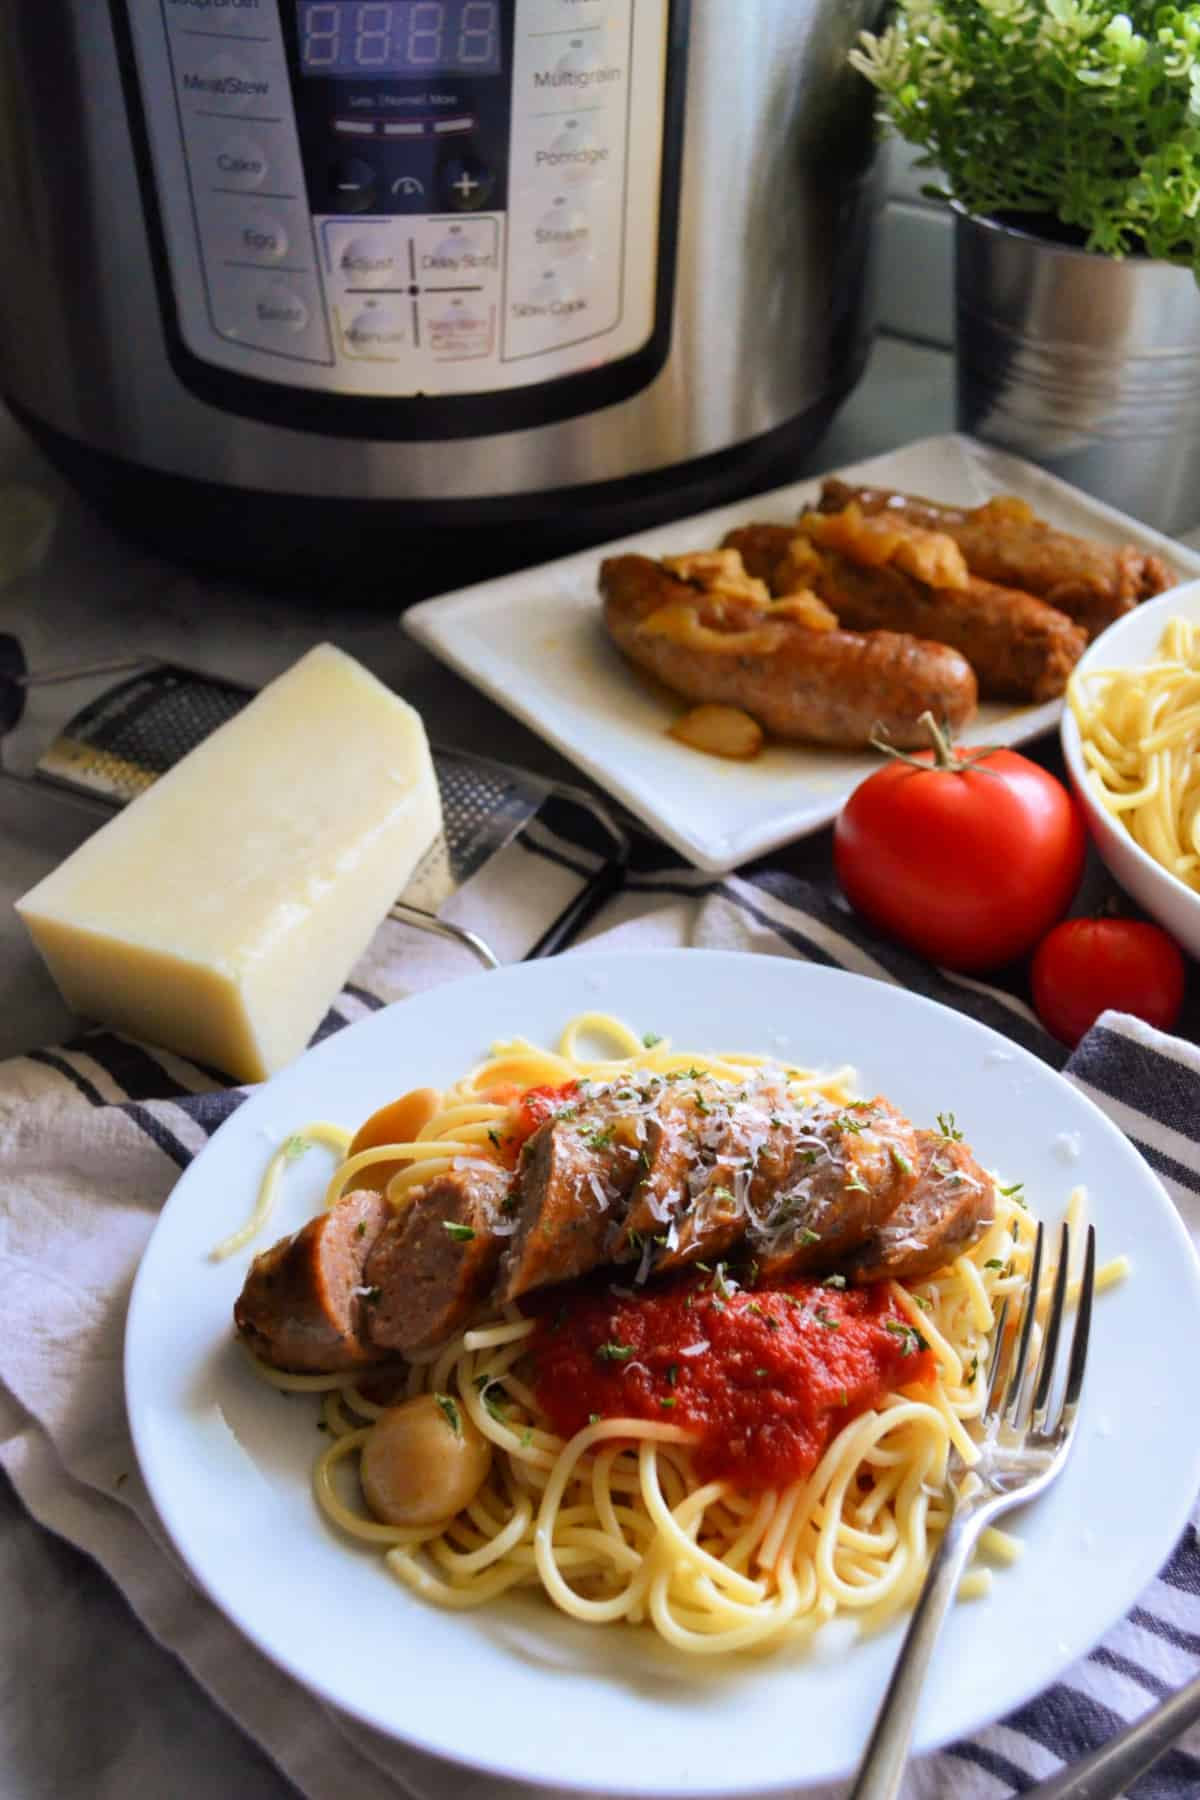 Instant Pot Italian Sausage on a plate of pasta with red sauce.